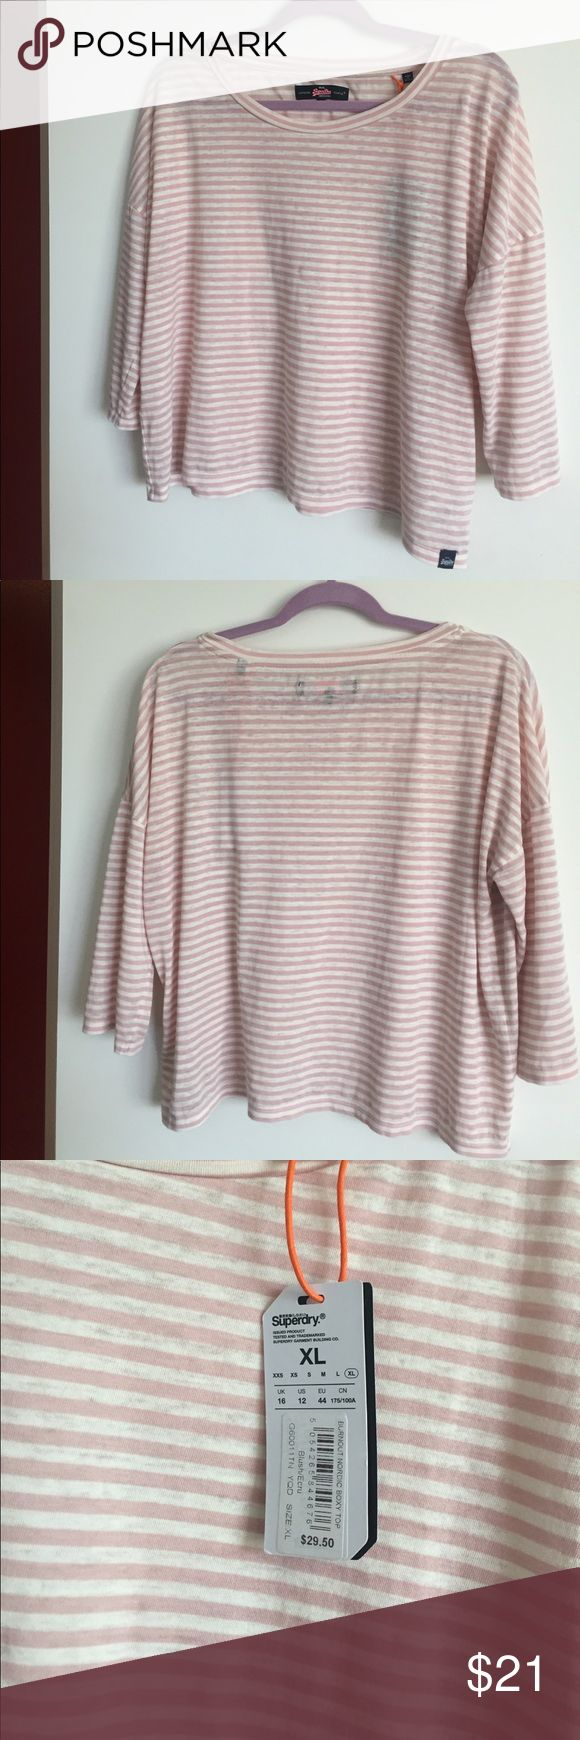 ✨NWT✨Superdry | Burnout Nordic Boxy Top NWT mid-sleeve top from Superdry. Blush/ ecru burnout. Boxy fit. *Stock photos for fit. Superdry Tops Blouses